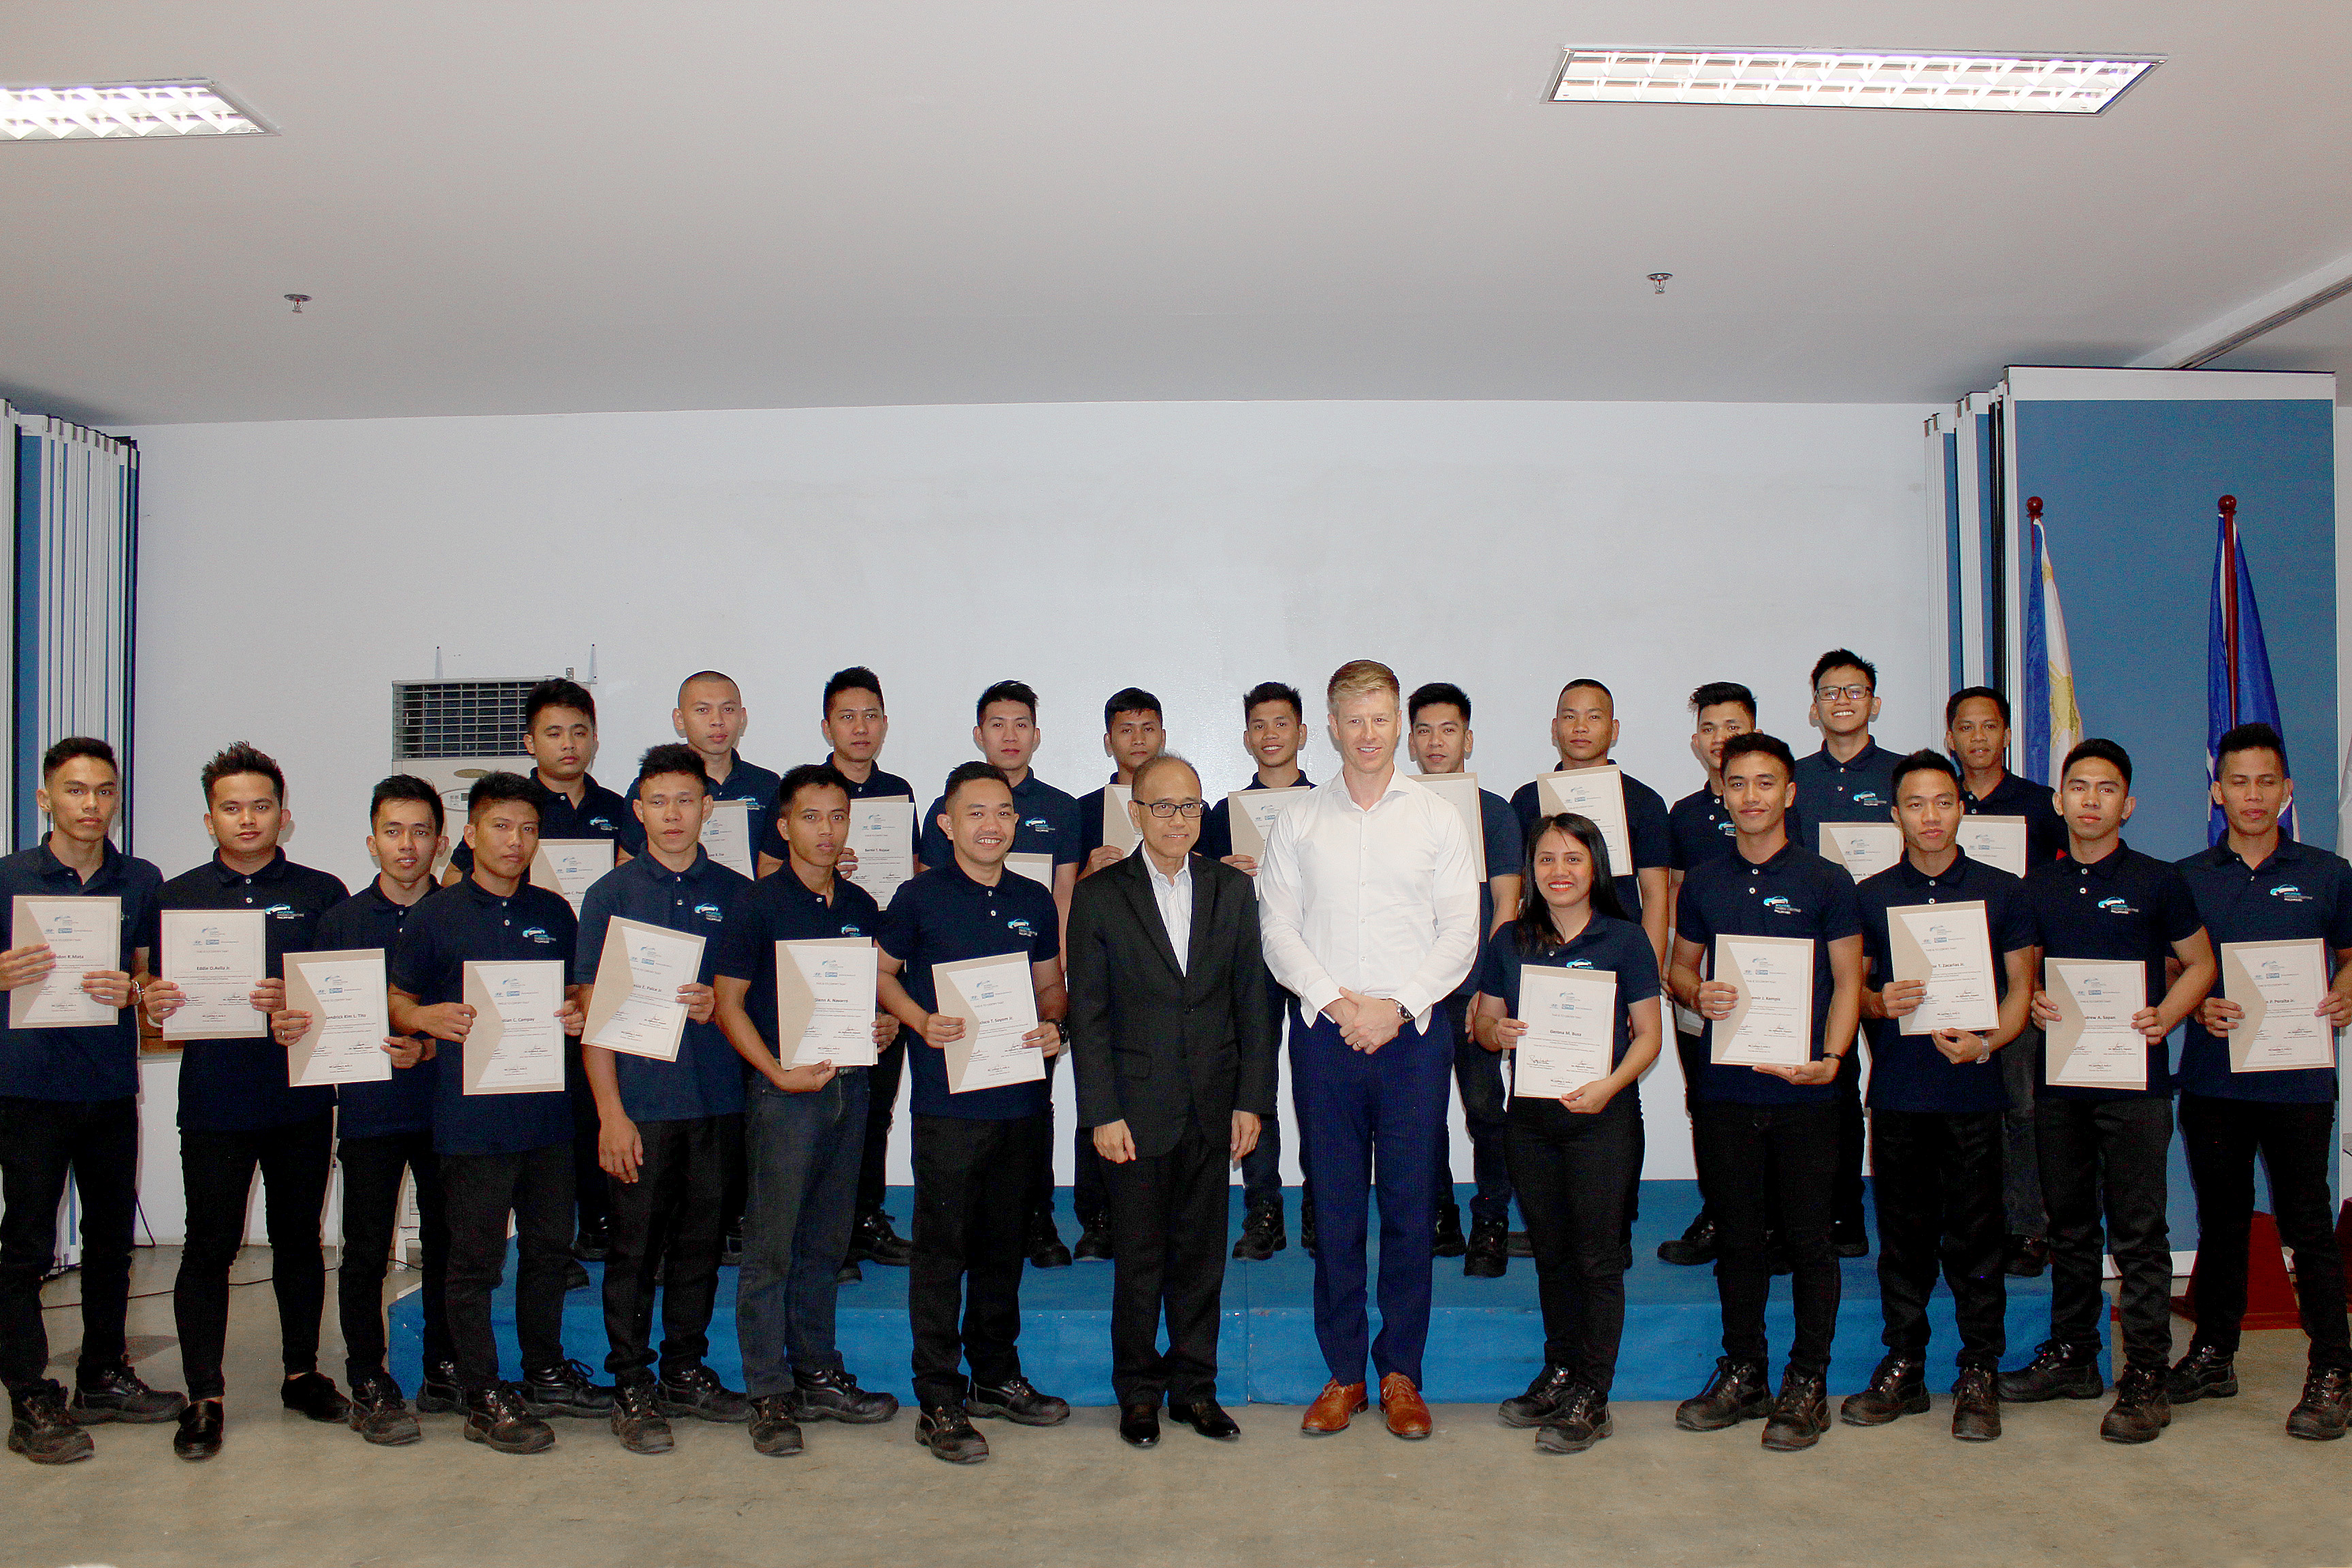 Hyundai Dream Centre Philippines' second batch of Course 3 automotive technology graduates show off their diplomas with HARI Chief Finance Officer and Chief Operating Officer for the Corporate and Trade Operations Support Services Group, Ladislao Avila and Plan International Deputy Country Director-Programme, Ryan Lander.